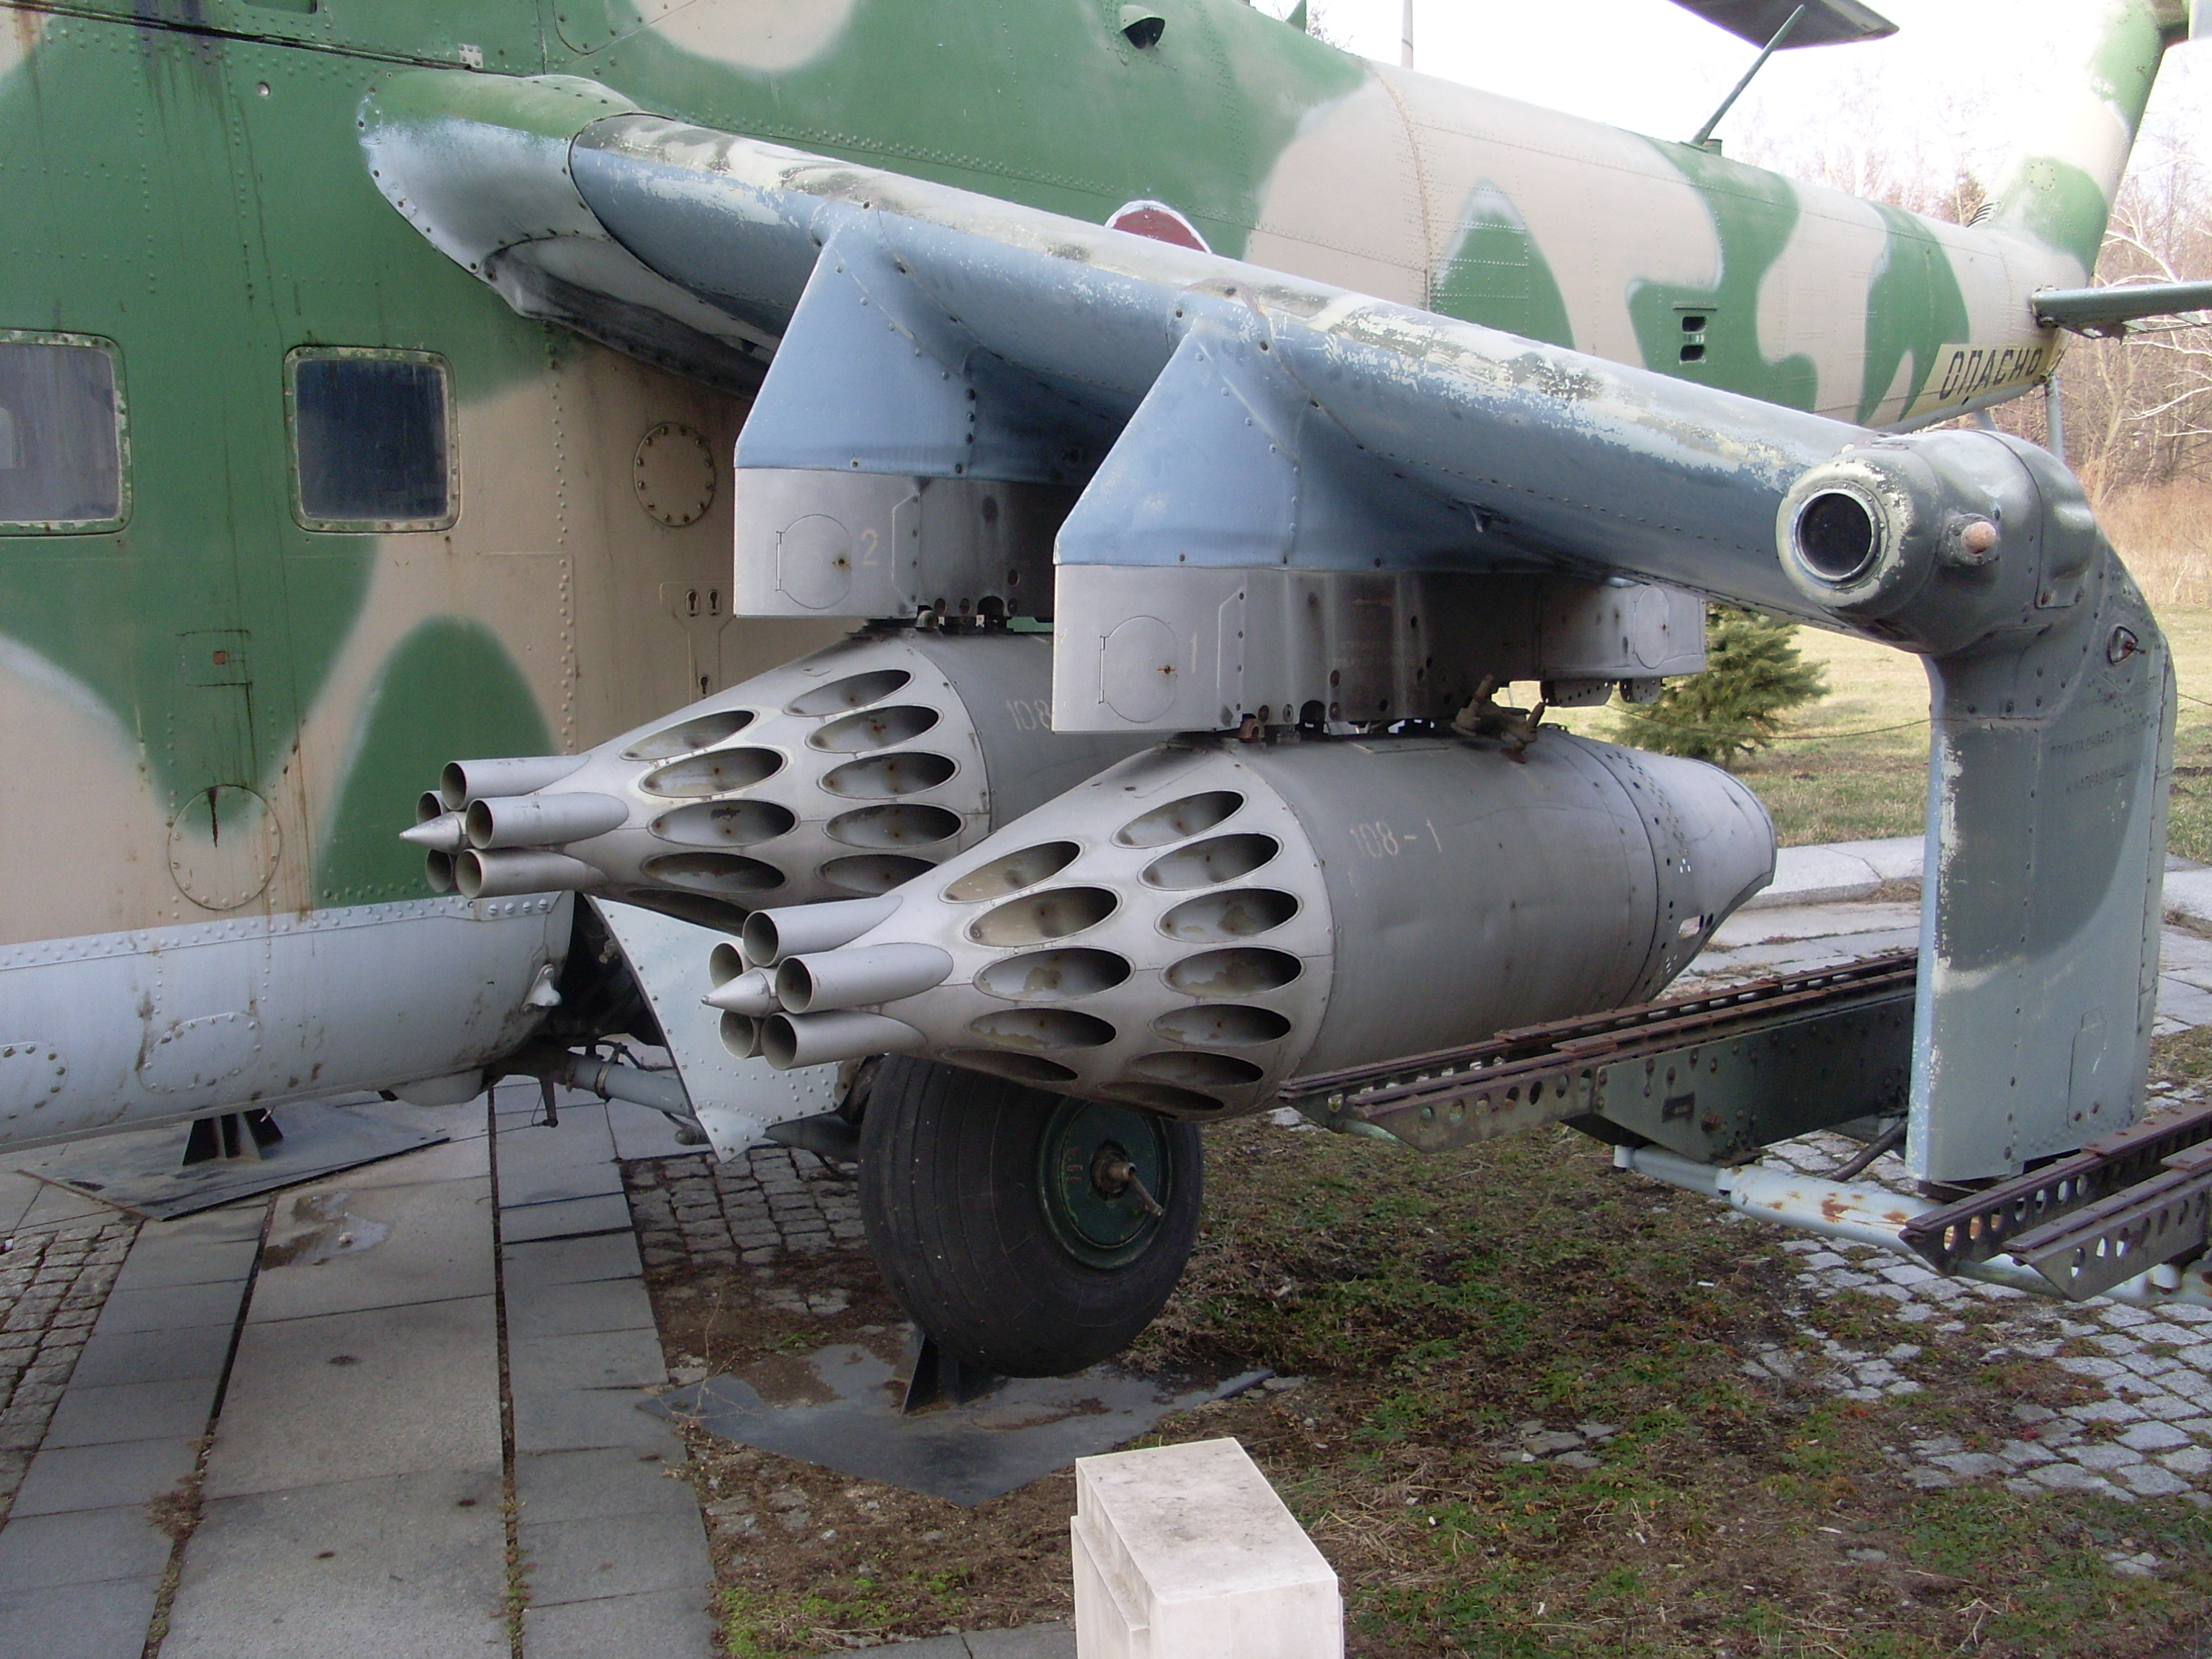 """Derivation"" 57mm AA gun development - Page 11 Mil_Mi-24%2C_armamento%2C_Museo_Nacional_de_Bulgaria%2C_marzo_de_2011"